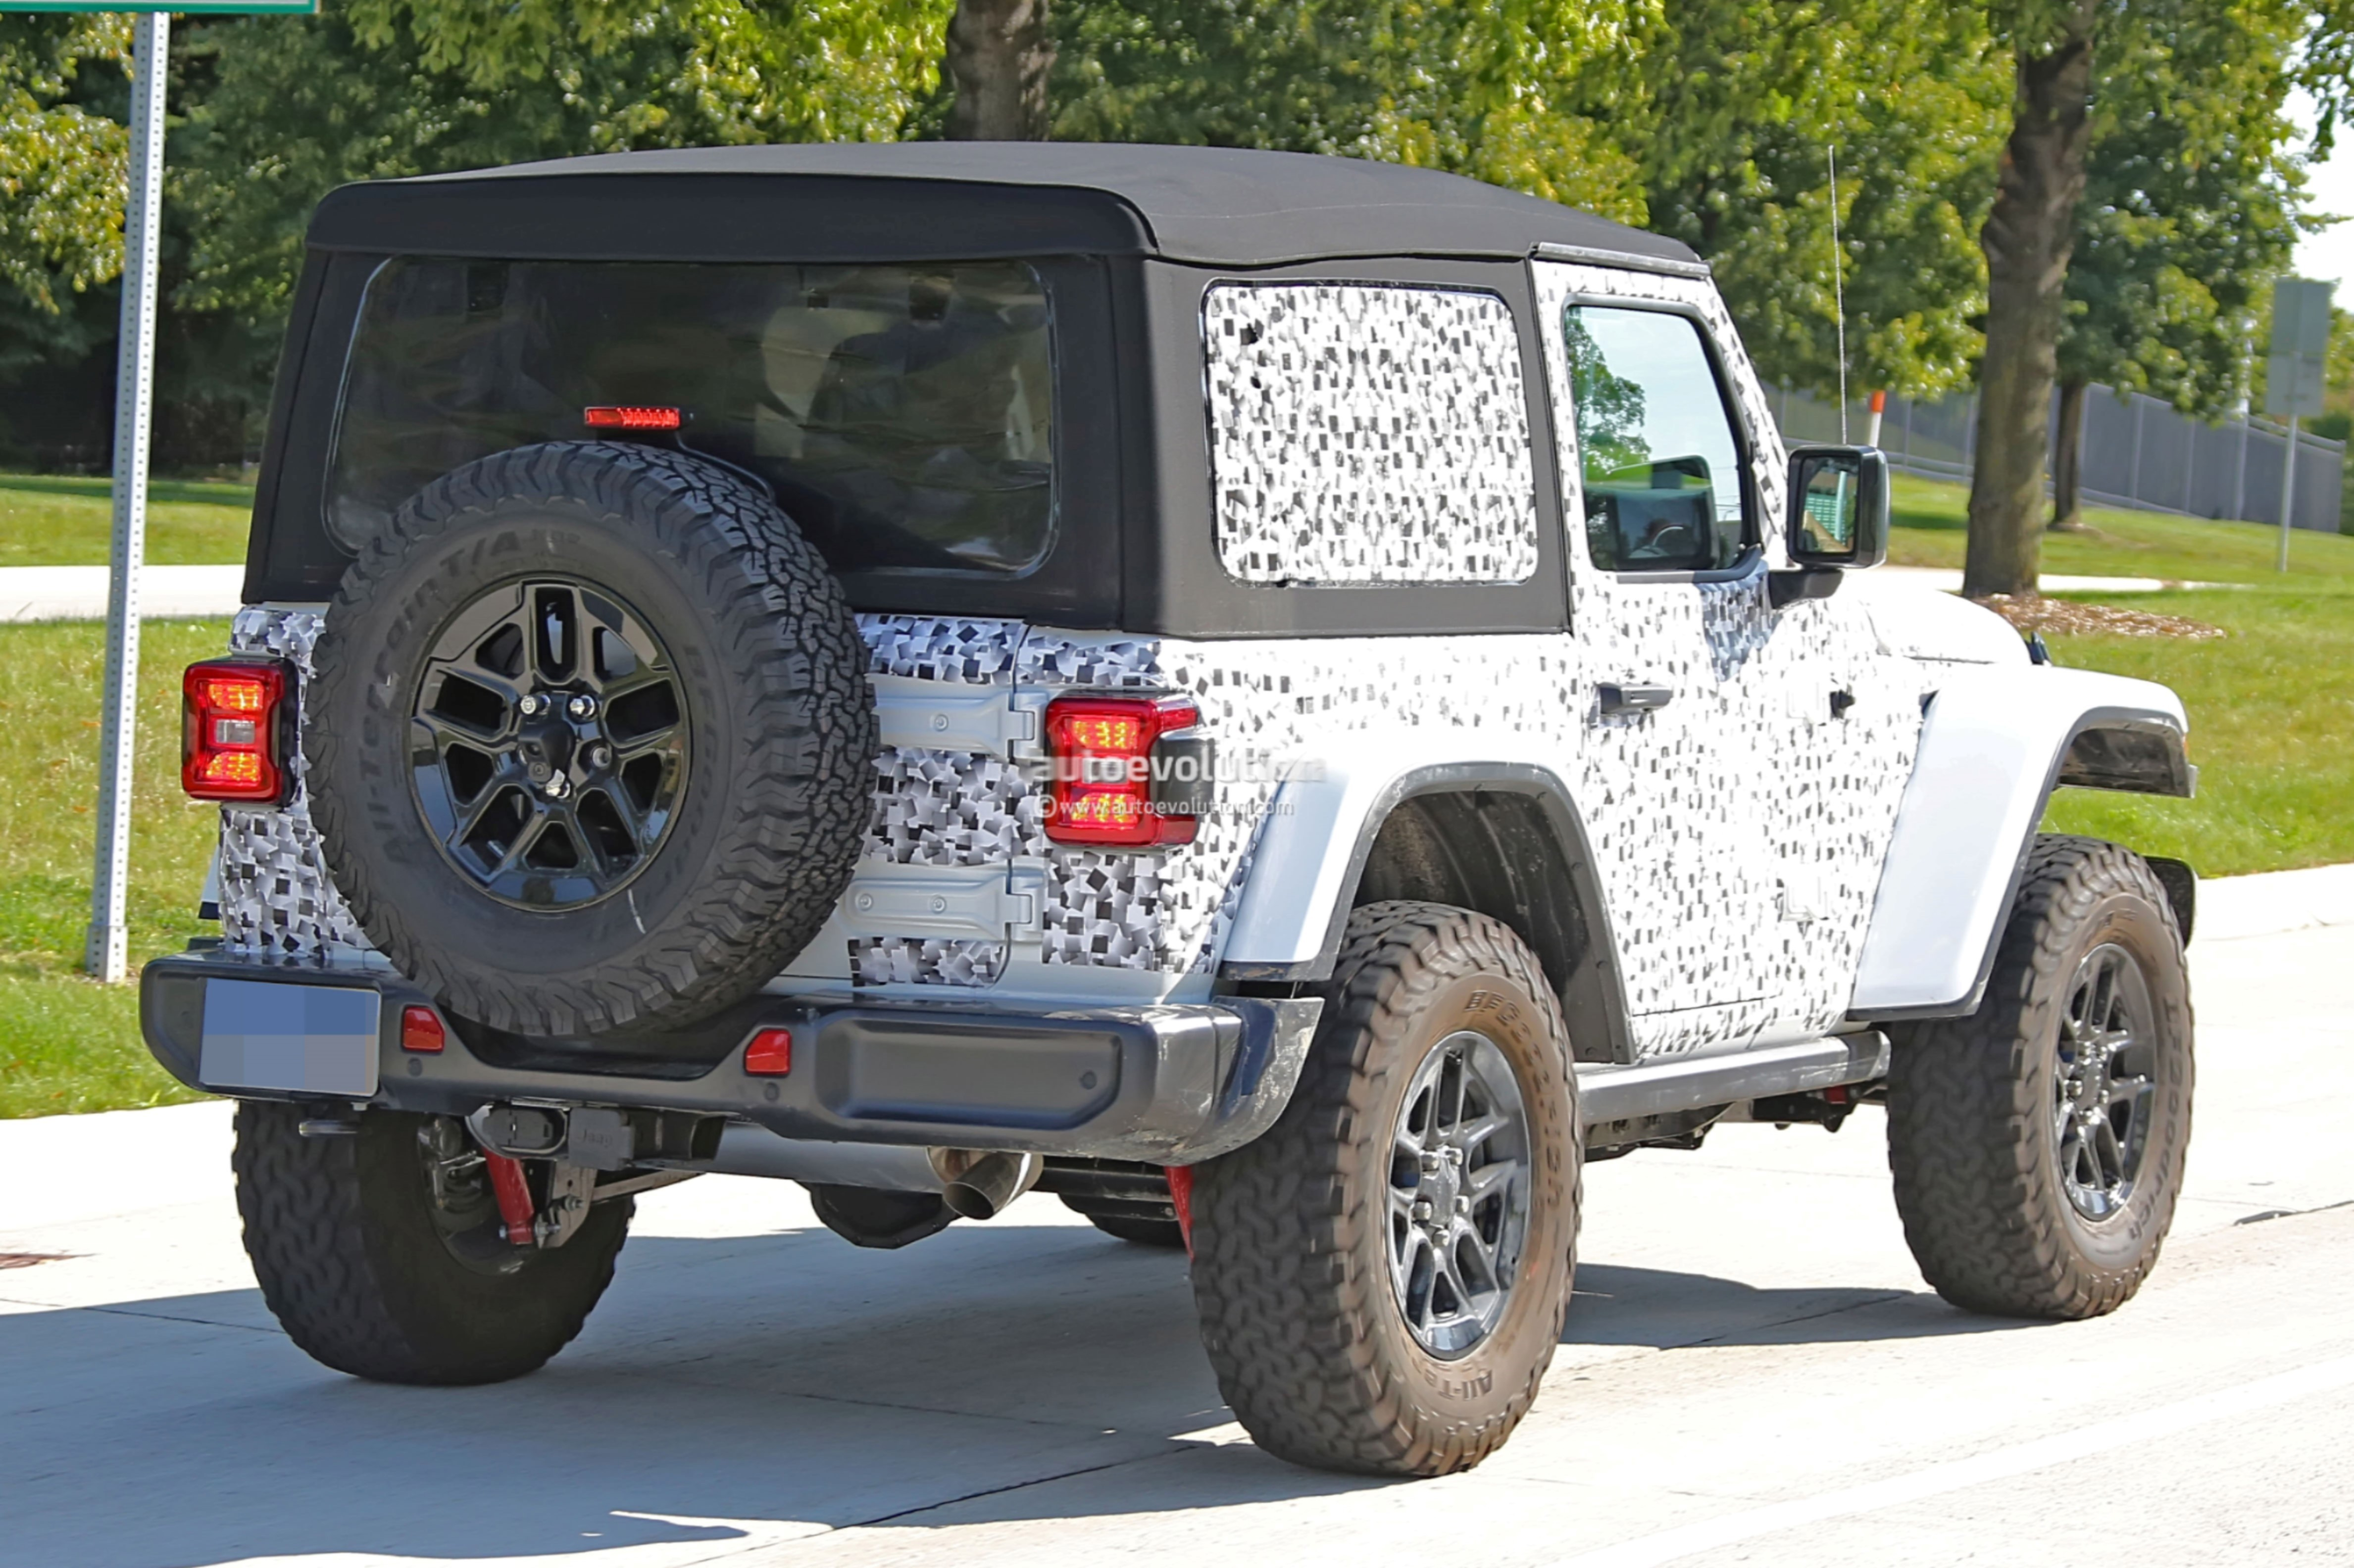 Spied Pics Jl Wrangler 2 Door Shows Off The New Soft Top Modern Jeeper